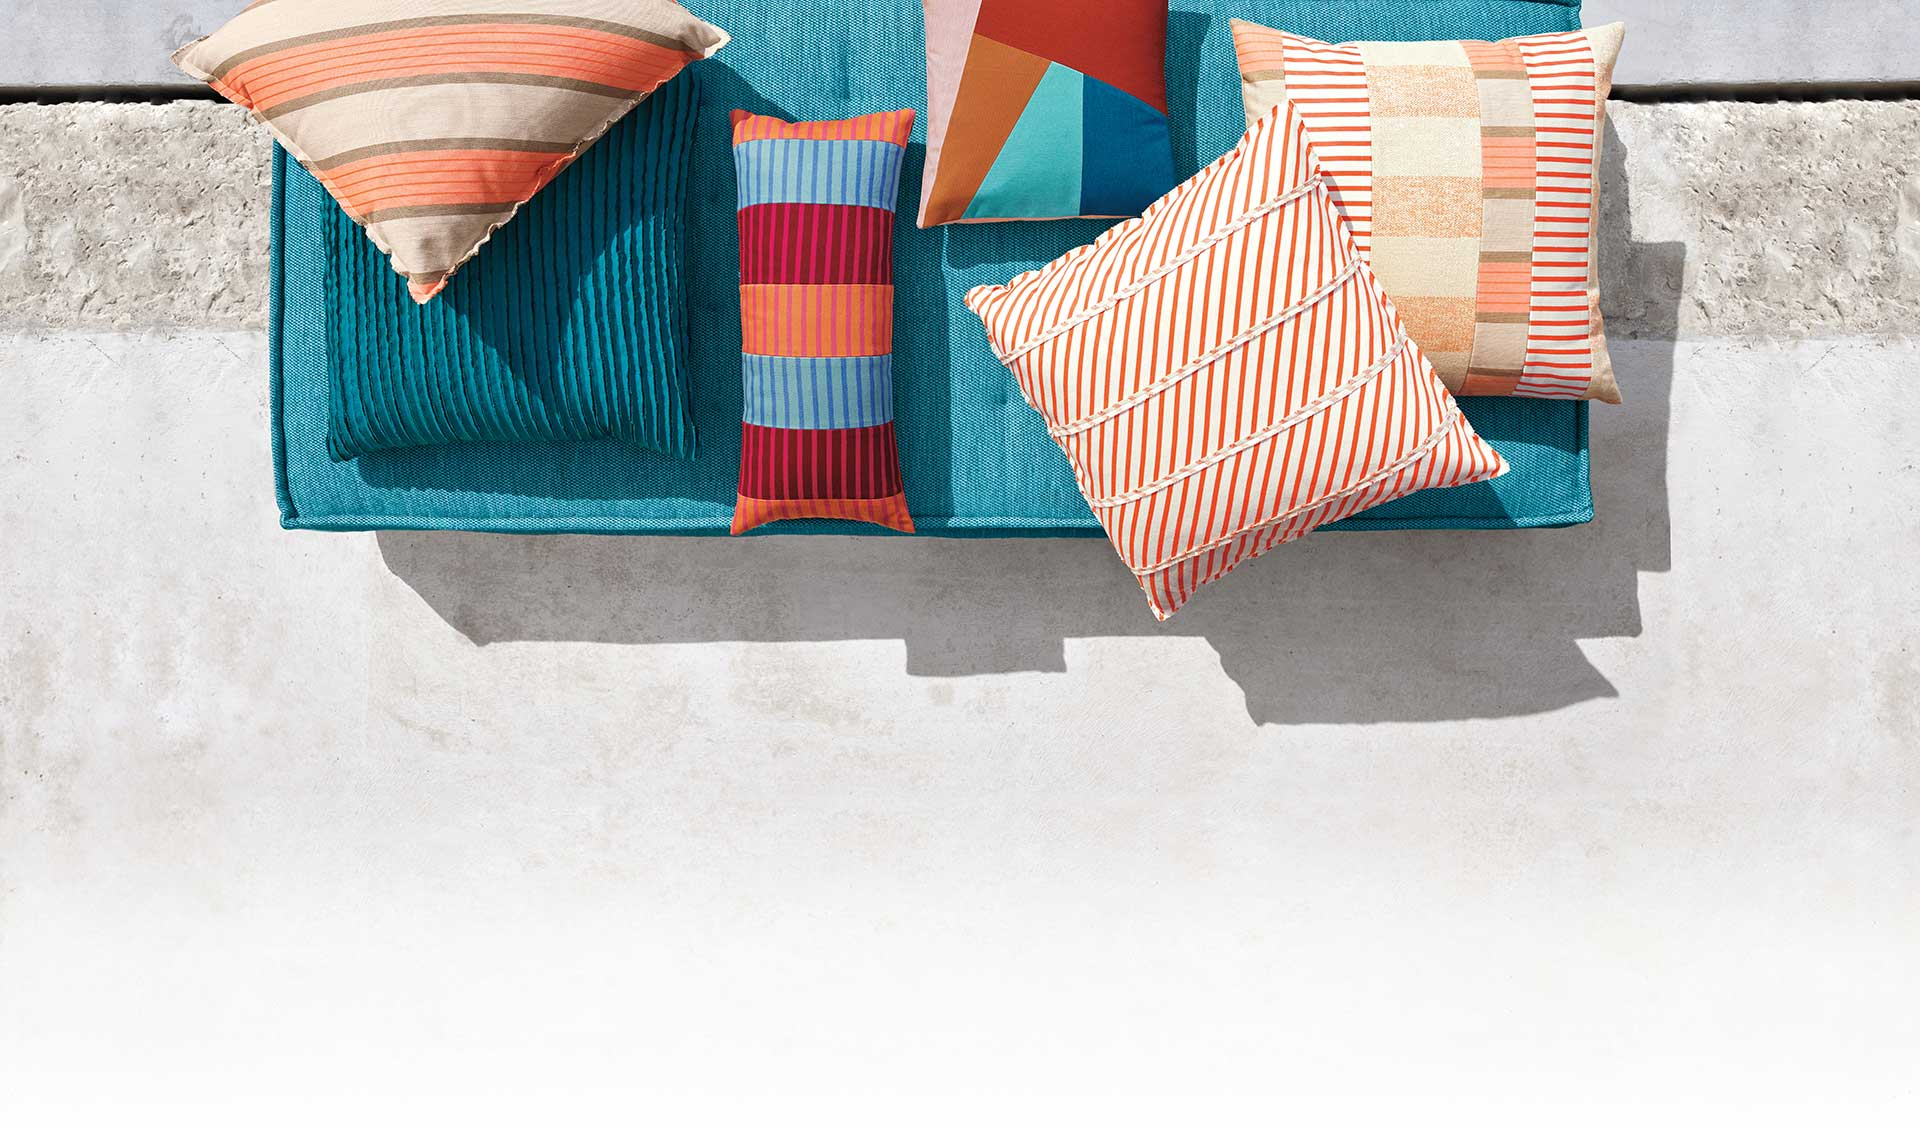 Close-up photo with teal floor cushion with pillows.